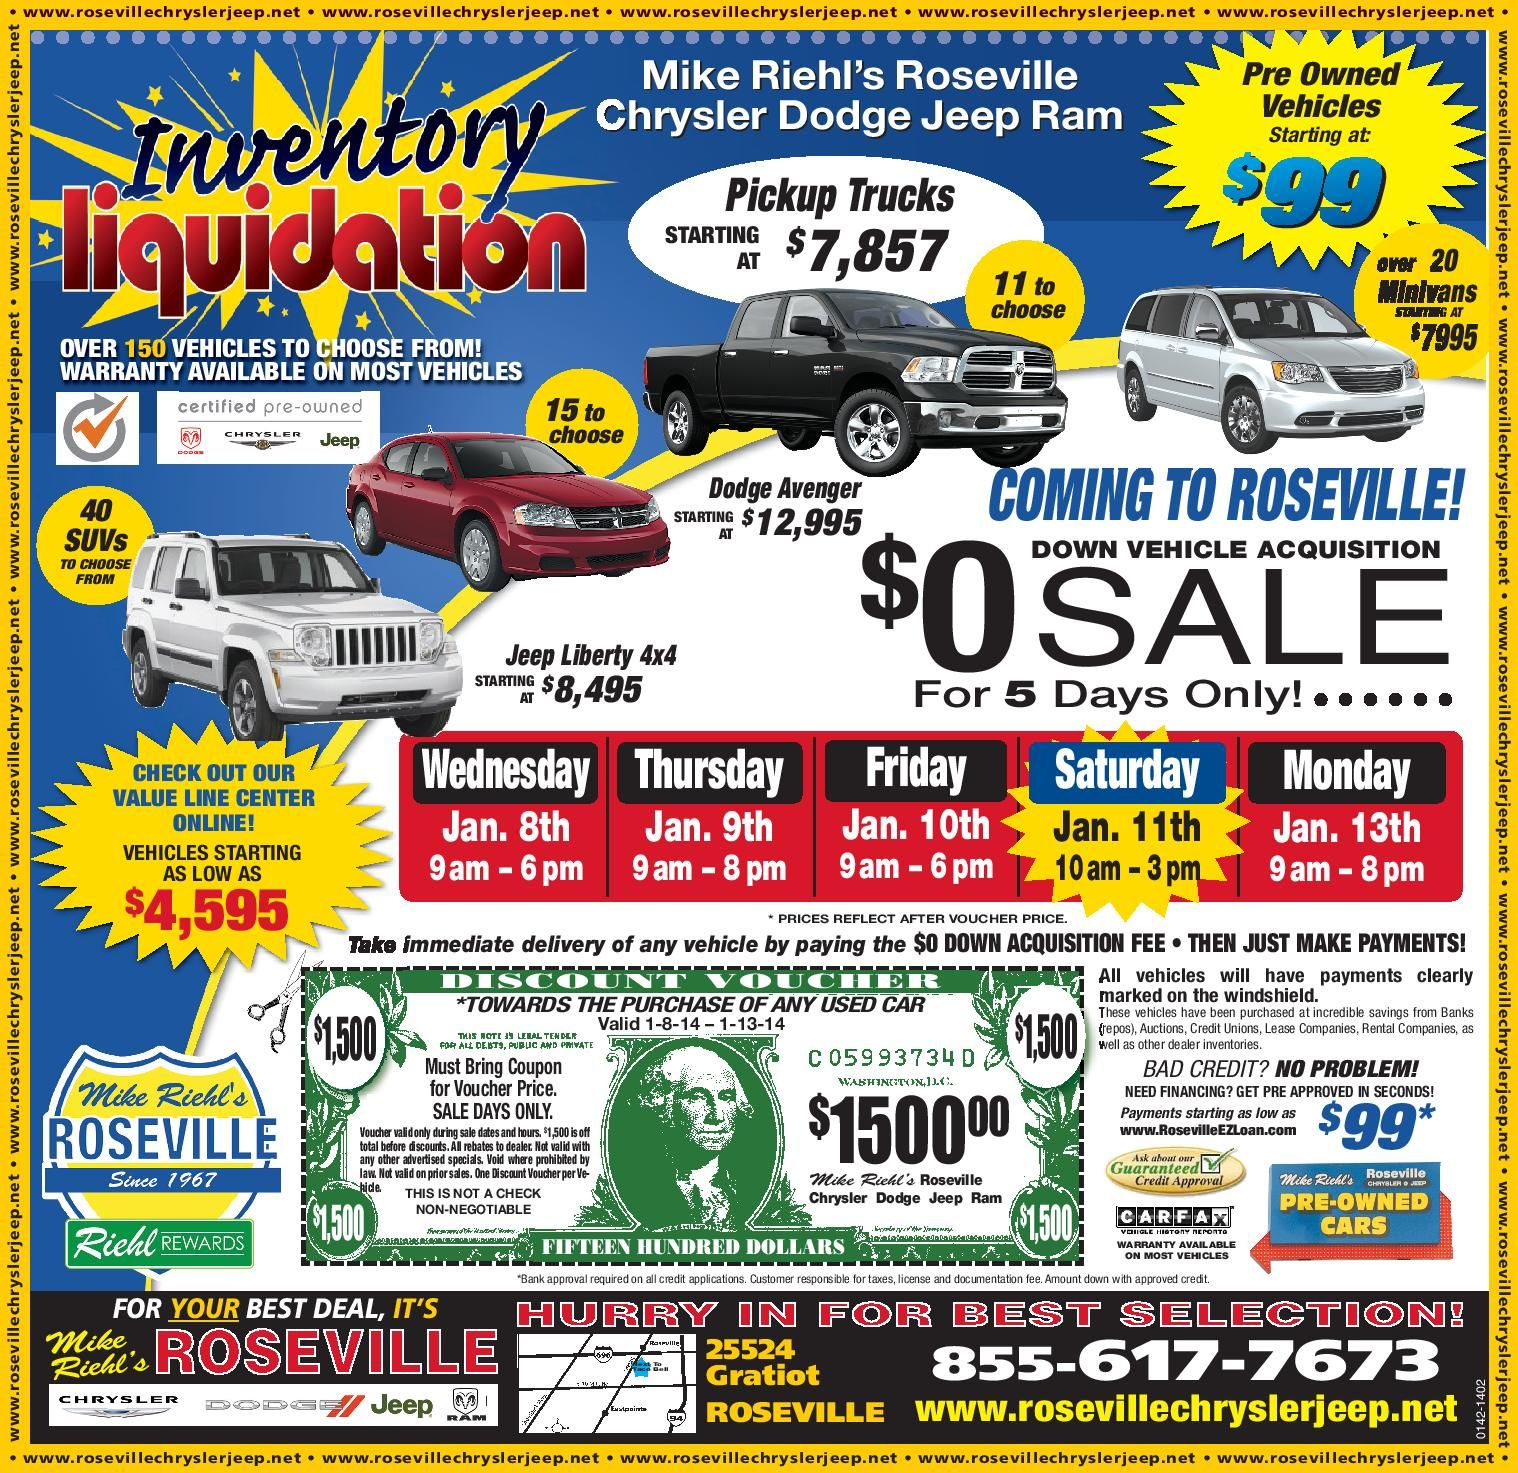 Save Some Money On A Pre Owned Vehicle Chrysler Dodge Jeep Jeep Dodge Chrysler Jeep